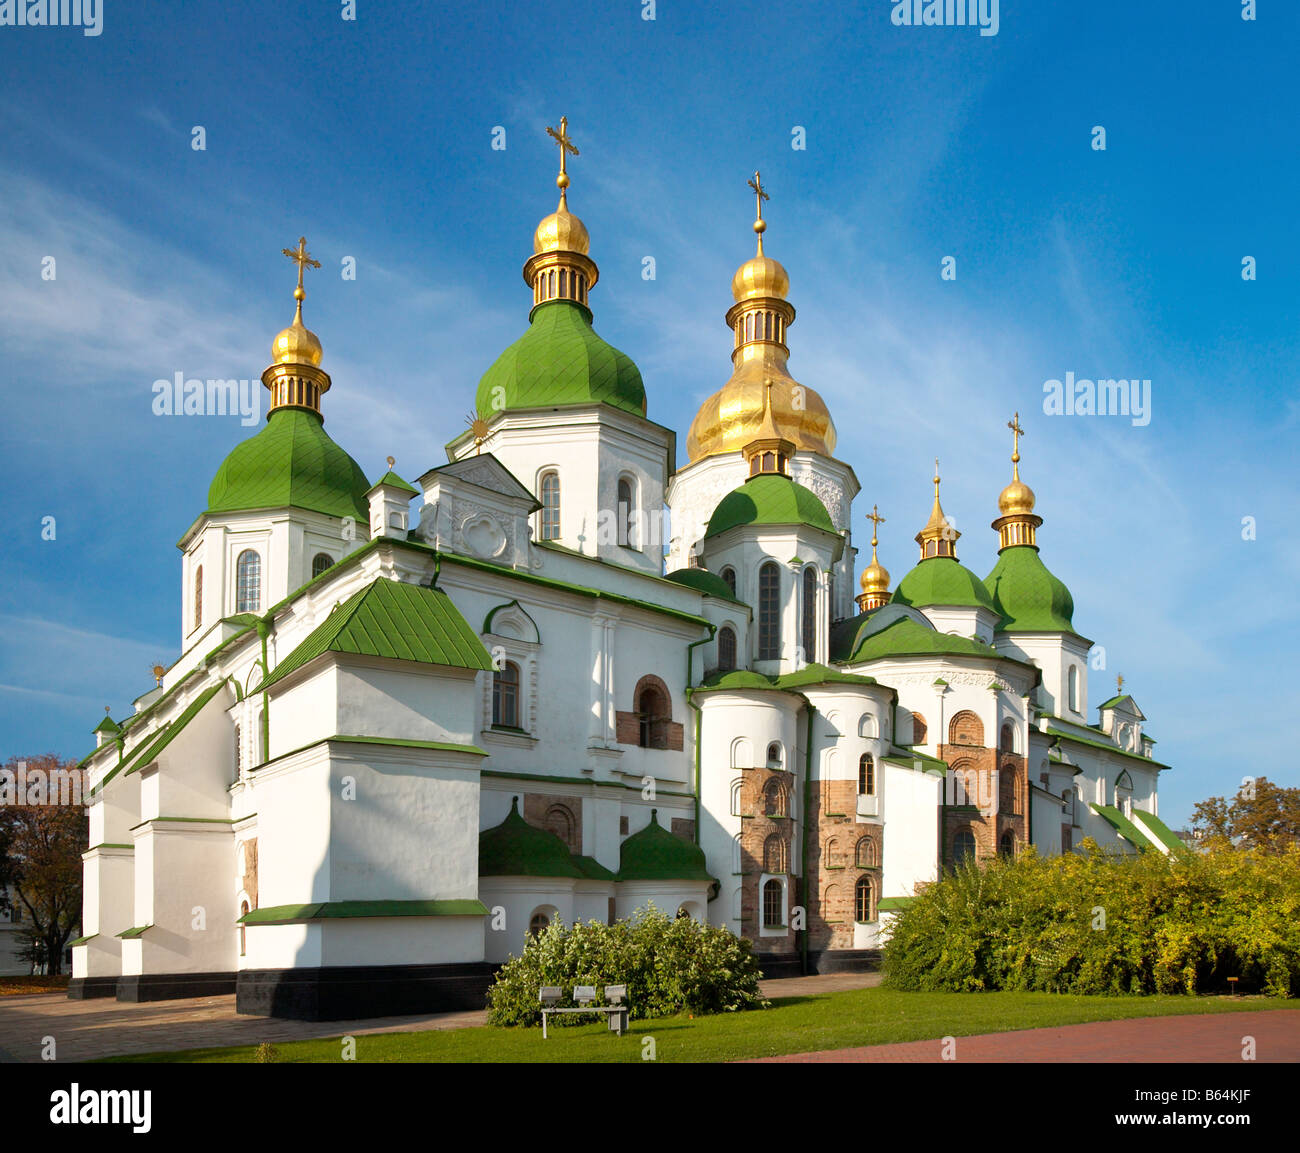 Morning Saint Sophia Cathedral church building view. Kiev City centre, Ukraine. - Stock Image